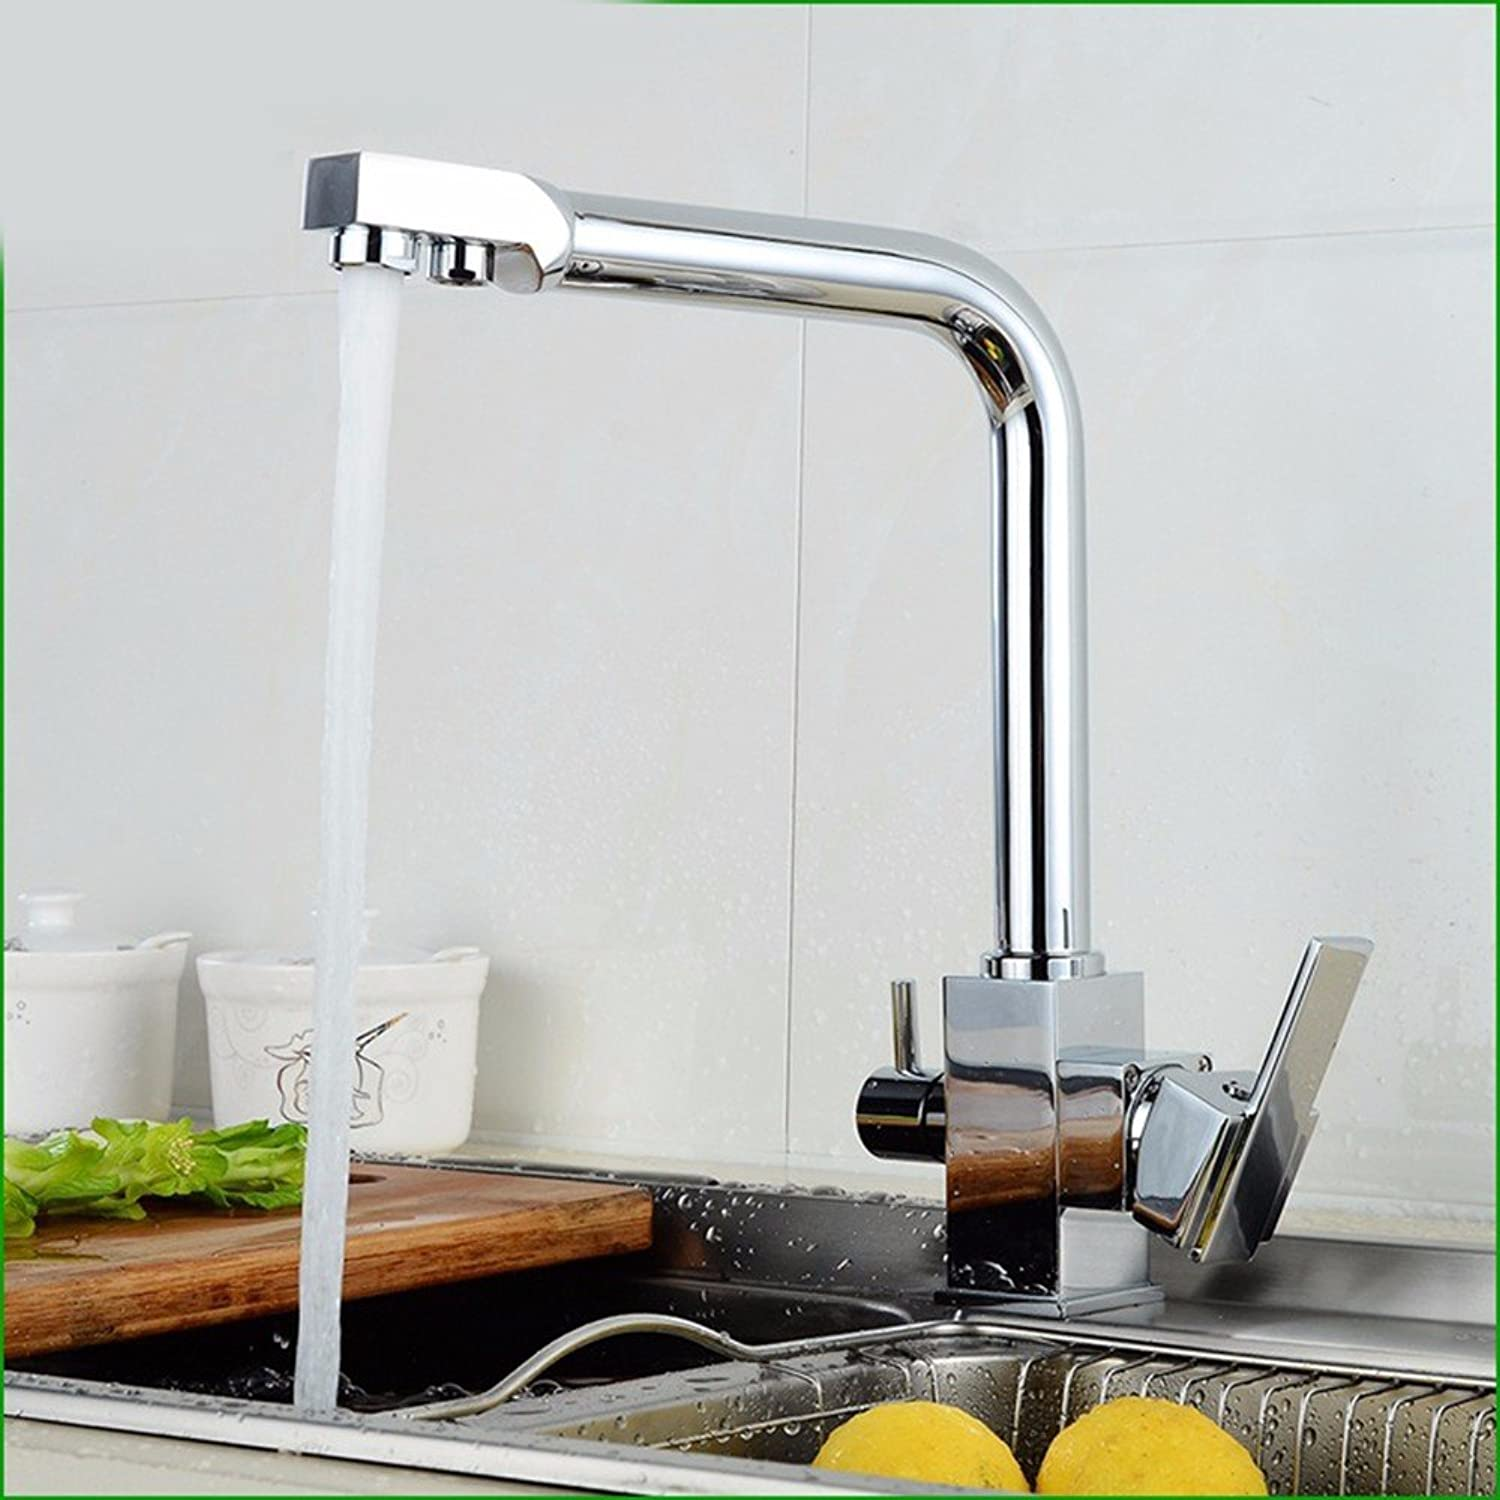 SJQKA-All copper kitchen faucet, three use kitchen faucet, pure faucet, hot and cold straight drink faucet